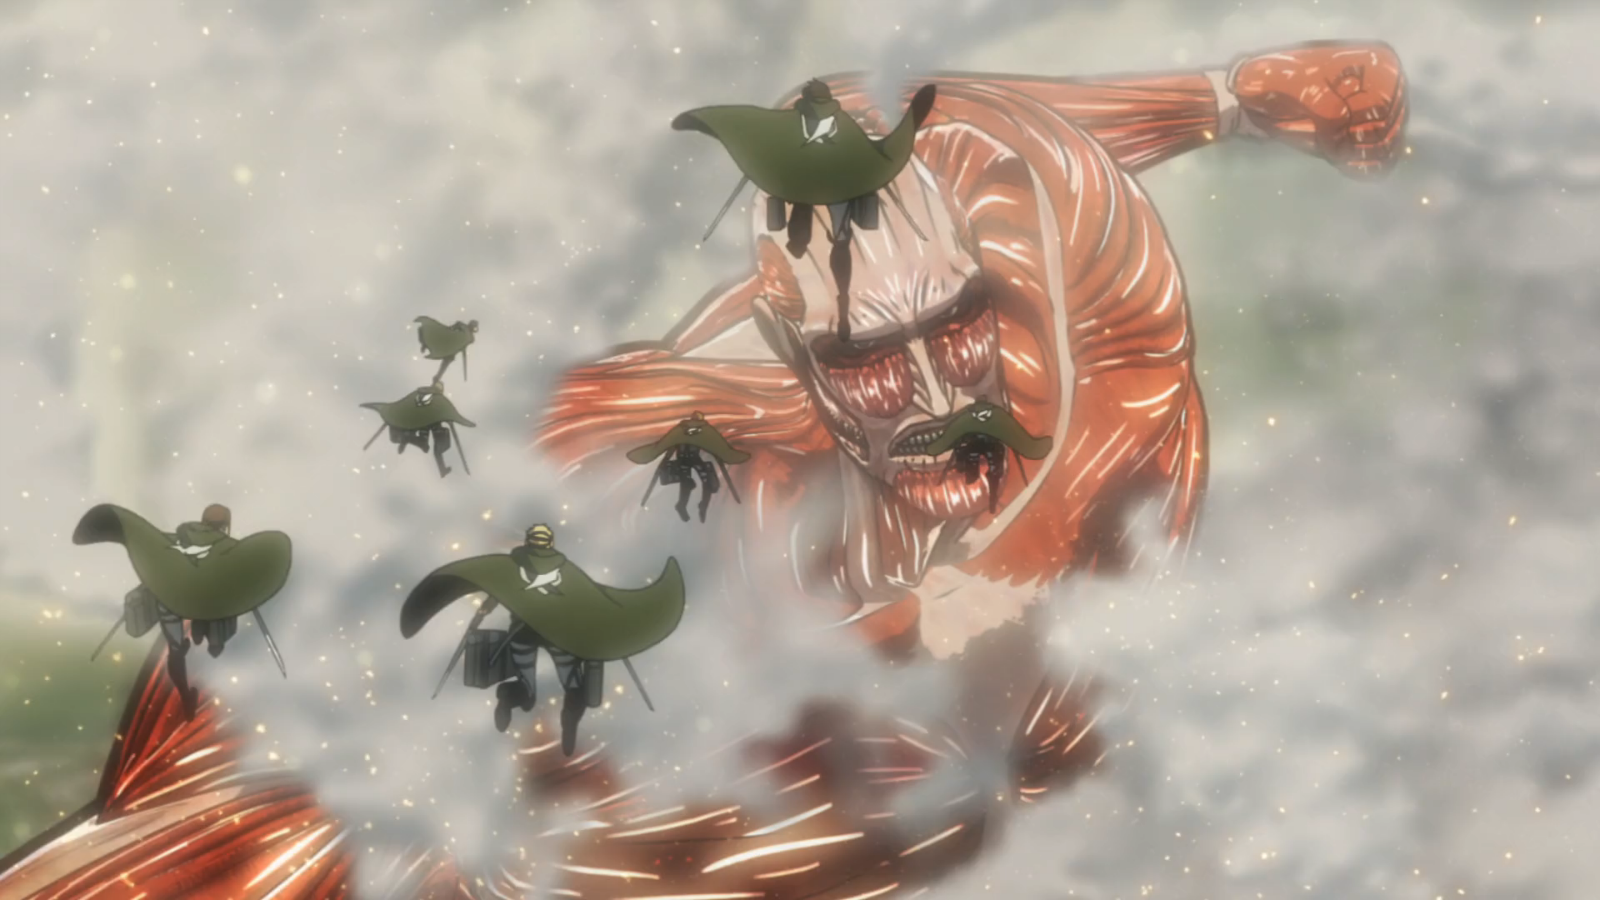 Category Attack On Titan Anime Images Attack On Titan Wiki Fandom